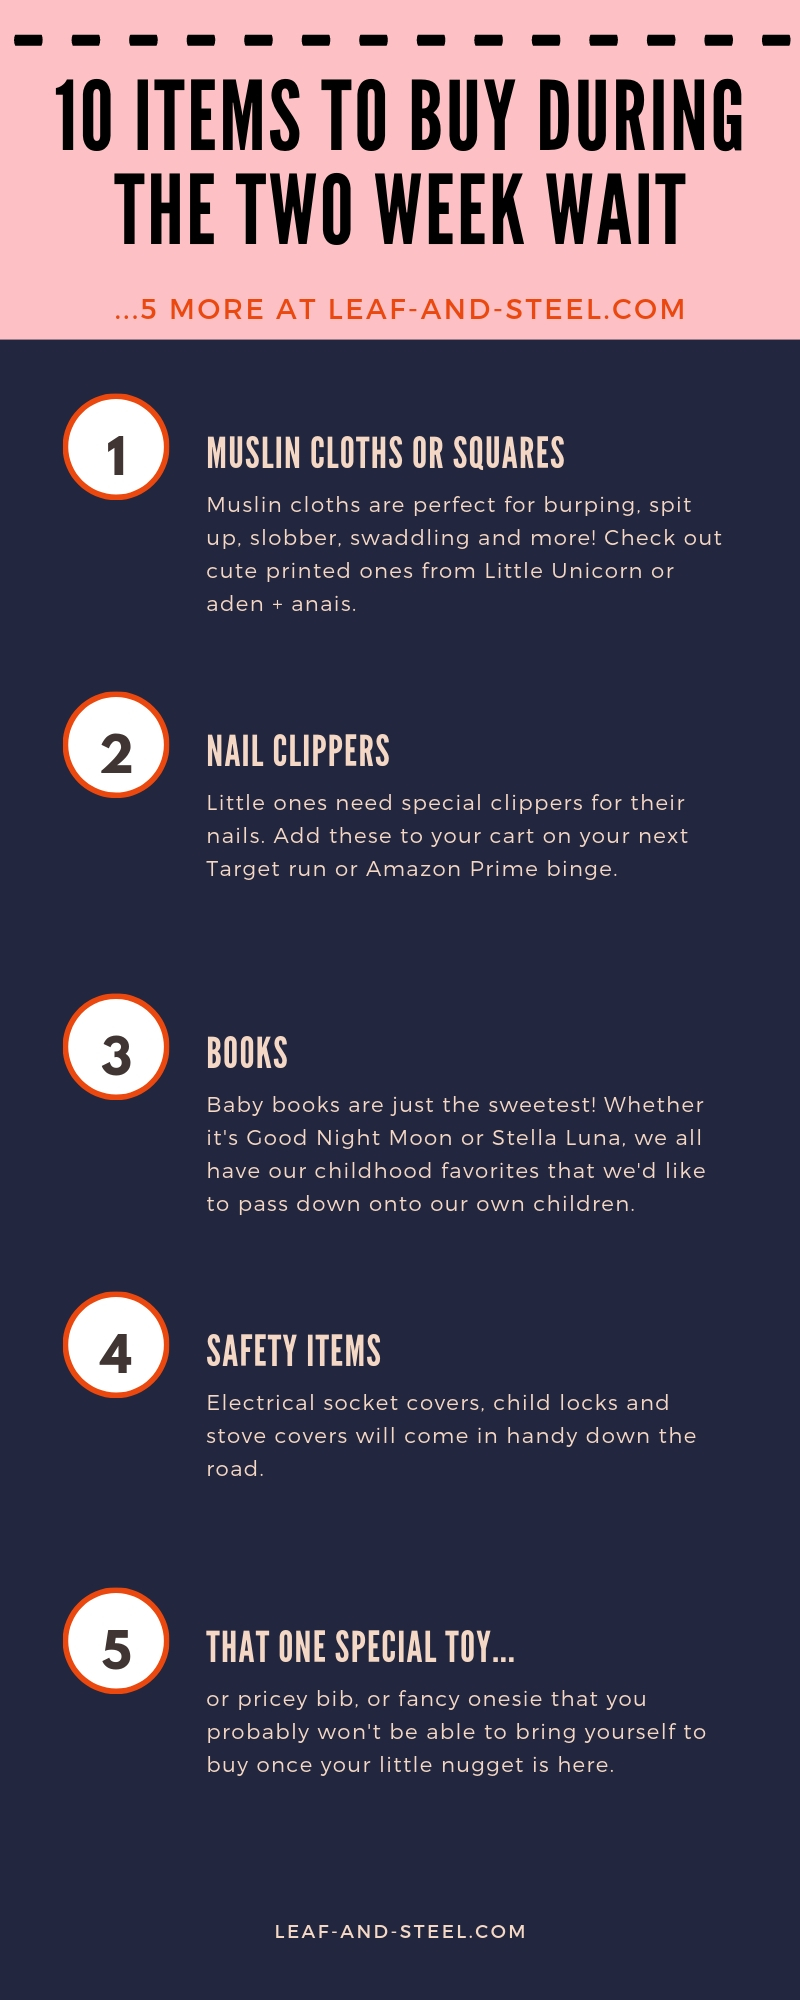 10 Items to buy during the two week wait